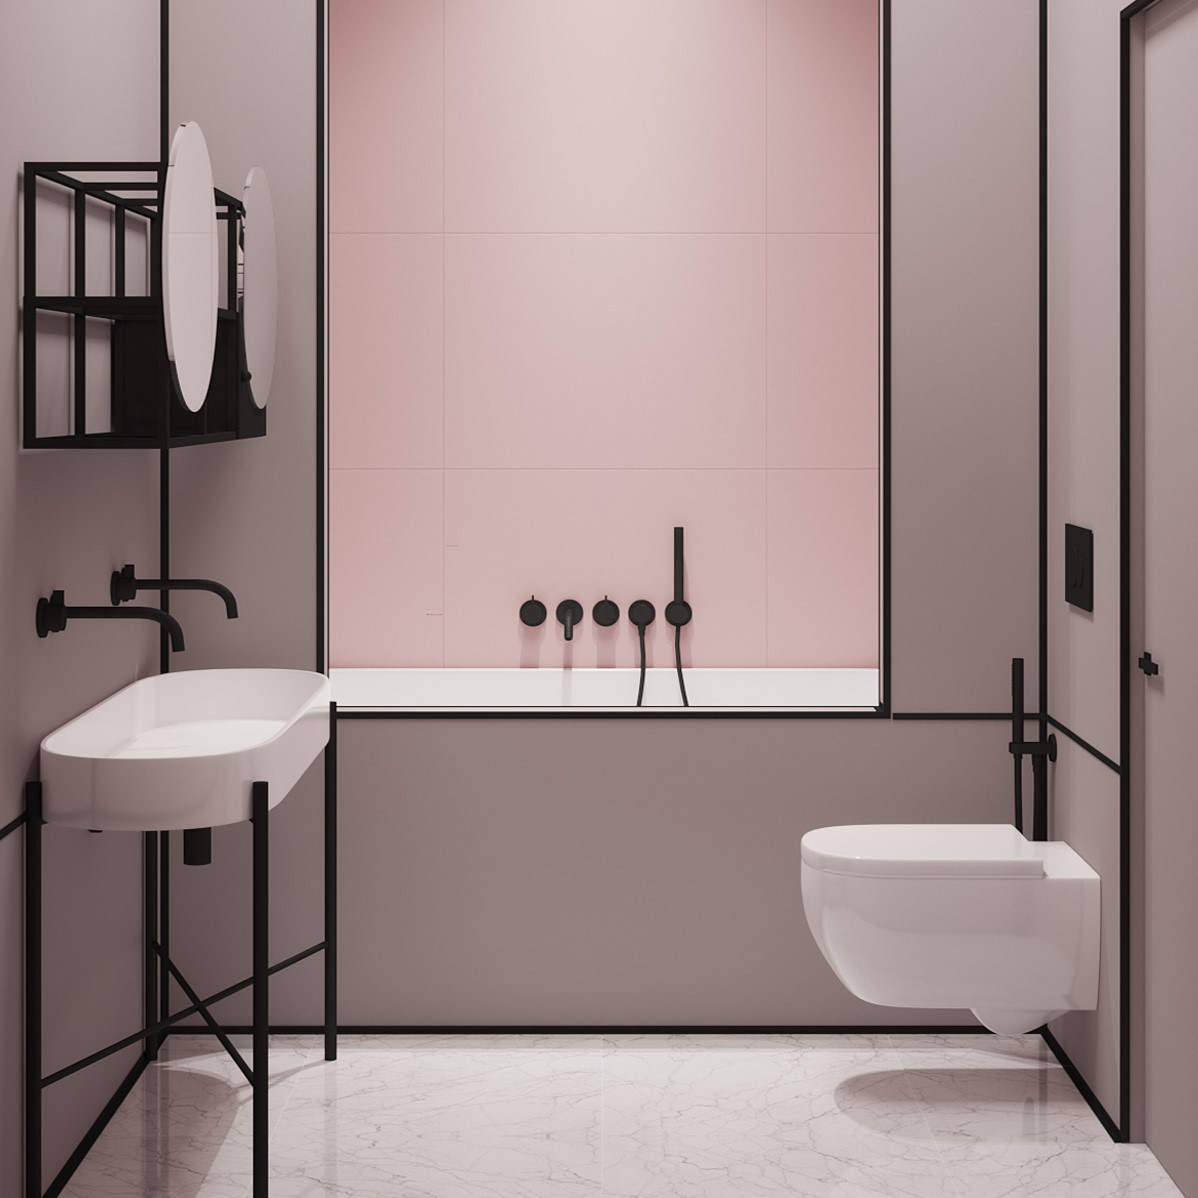 Designs Colors And Tiles Ideas 8 Bathroom Trends For 2020